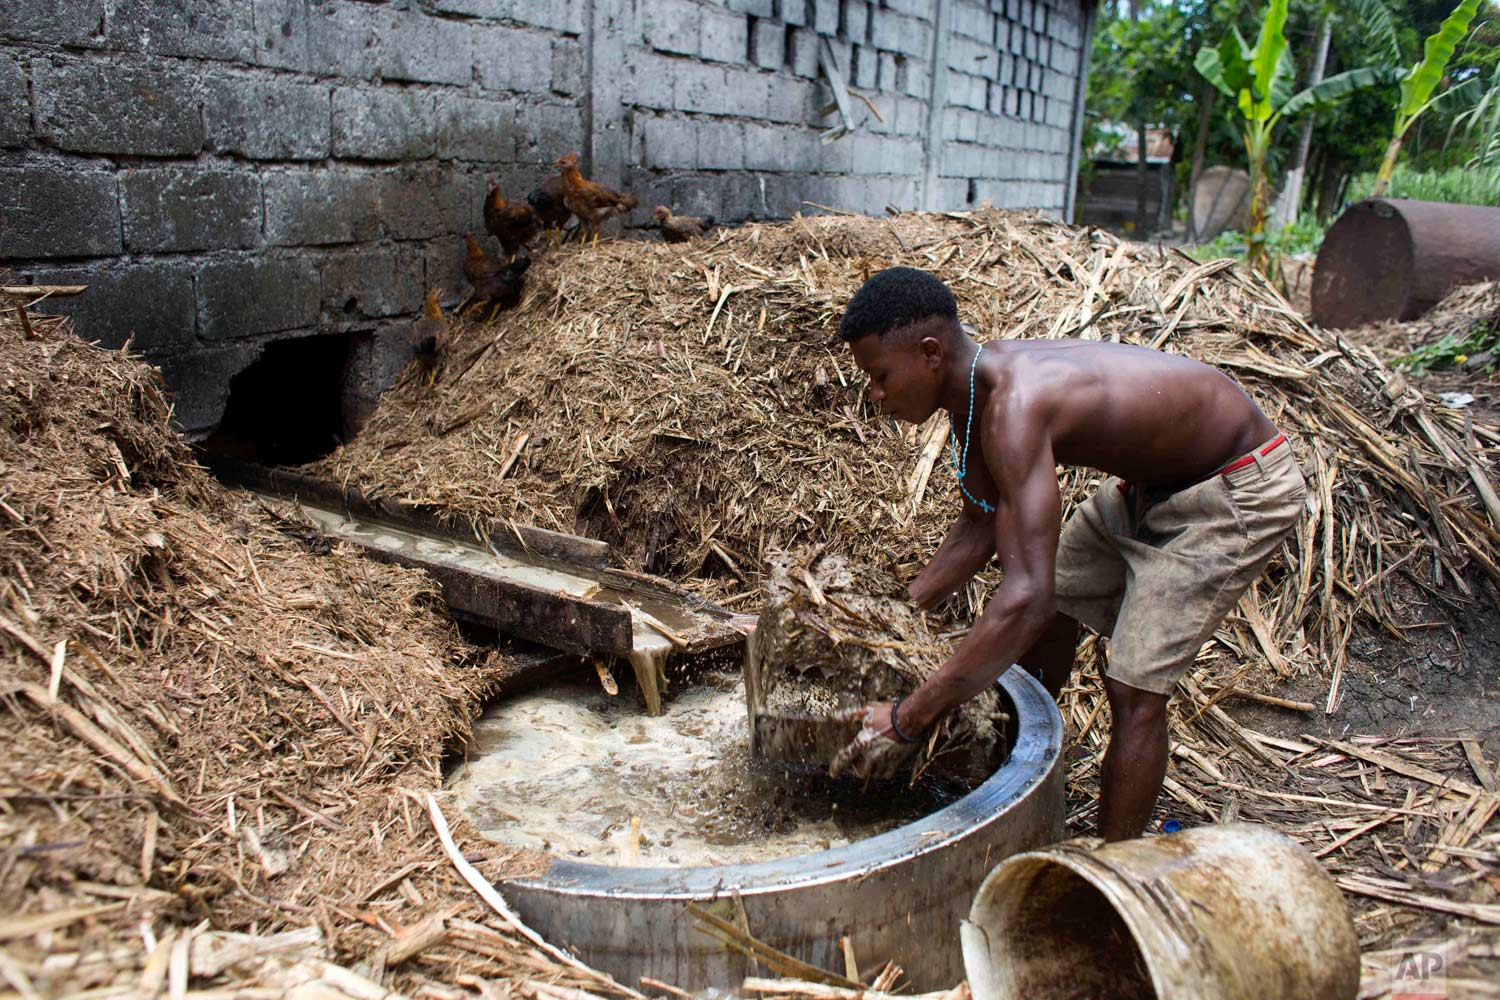 In this June 19, 2017 photo, Gabriel Shnaider, 22, removes bagasse, the leftover fiber after pressing juice from sugar cane, at the Ti Jean distillery which produces clairin, a sugar-based alcoholic drink, in Leogane, Haiti. The bagasse is later used to feed the fire that will cook the fermented juice. (AP Photo/Dieu Nalio Chery)